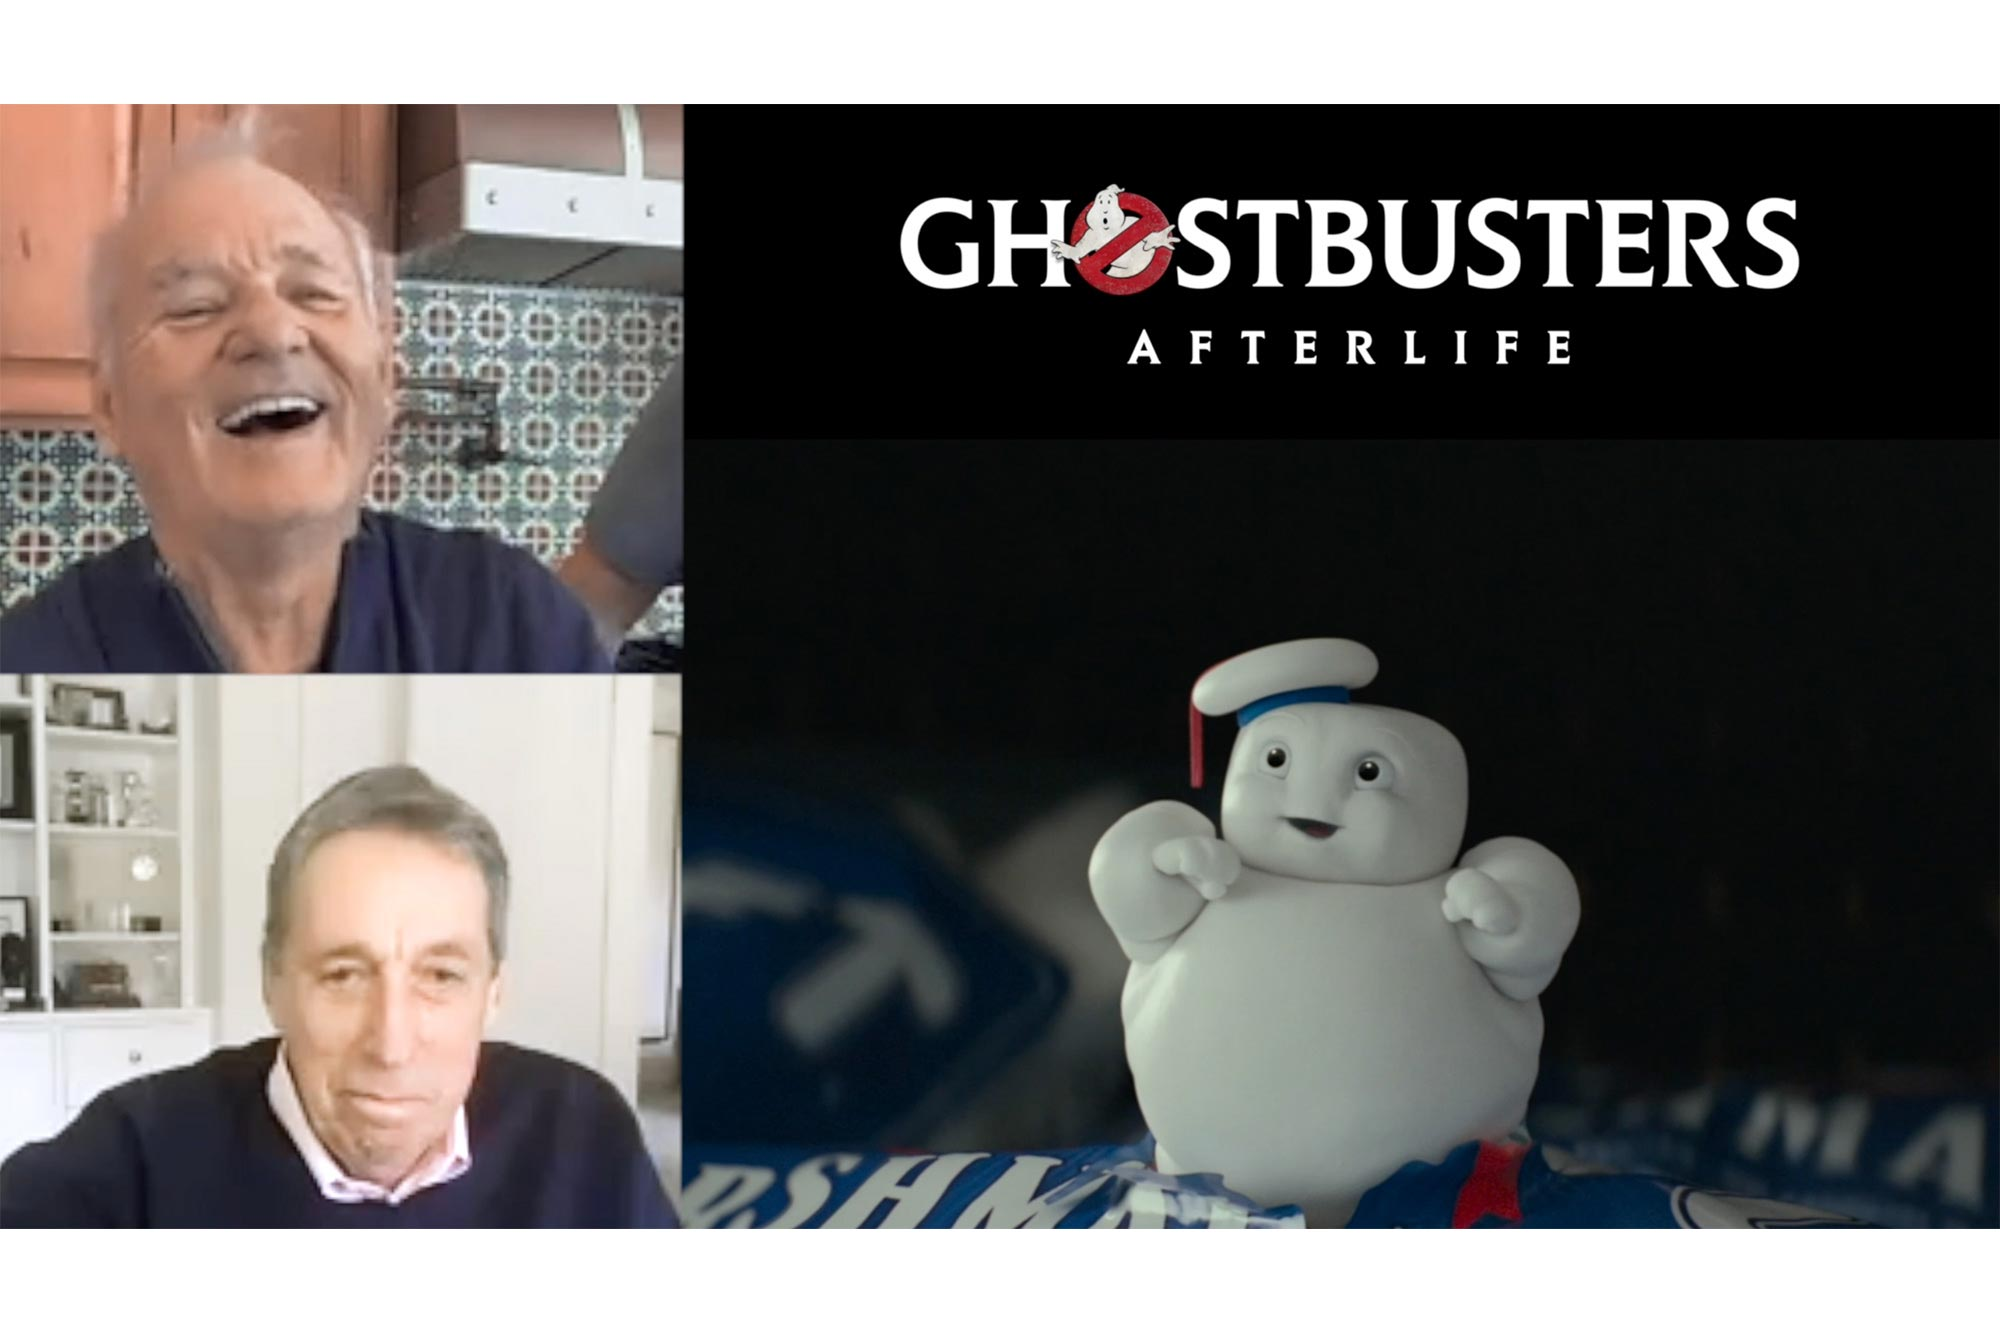 Ghostbuster afterlife